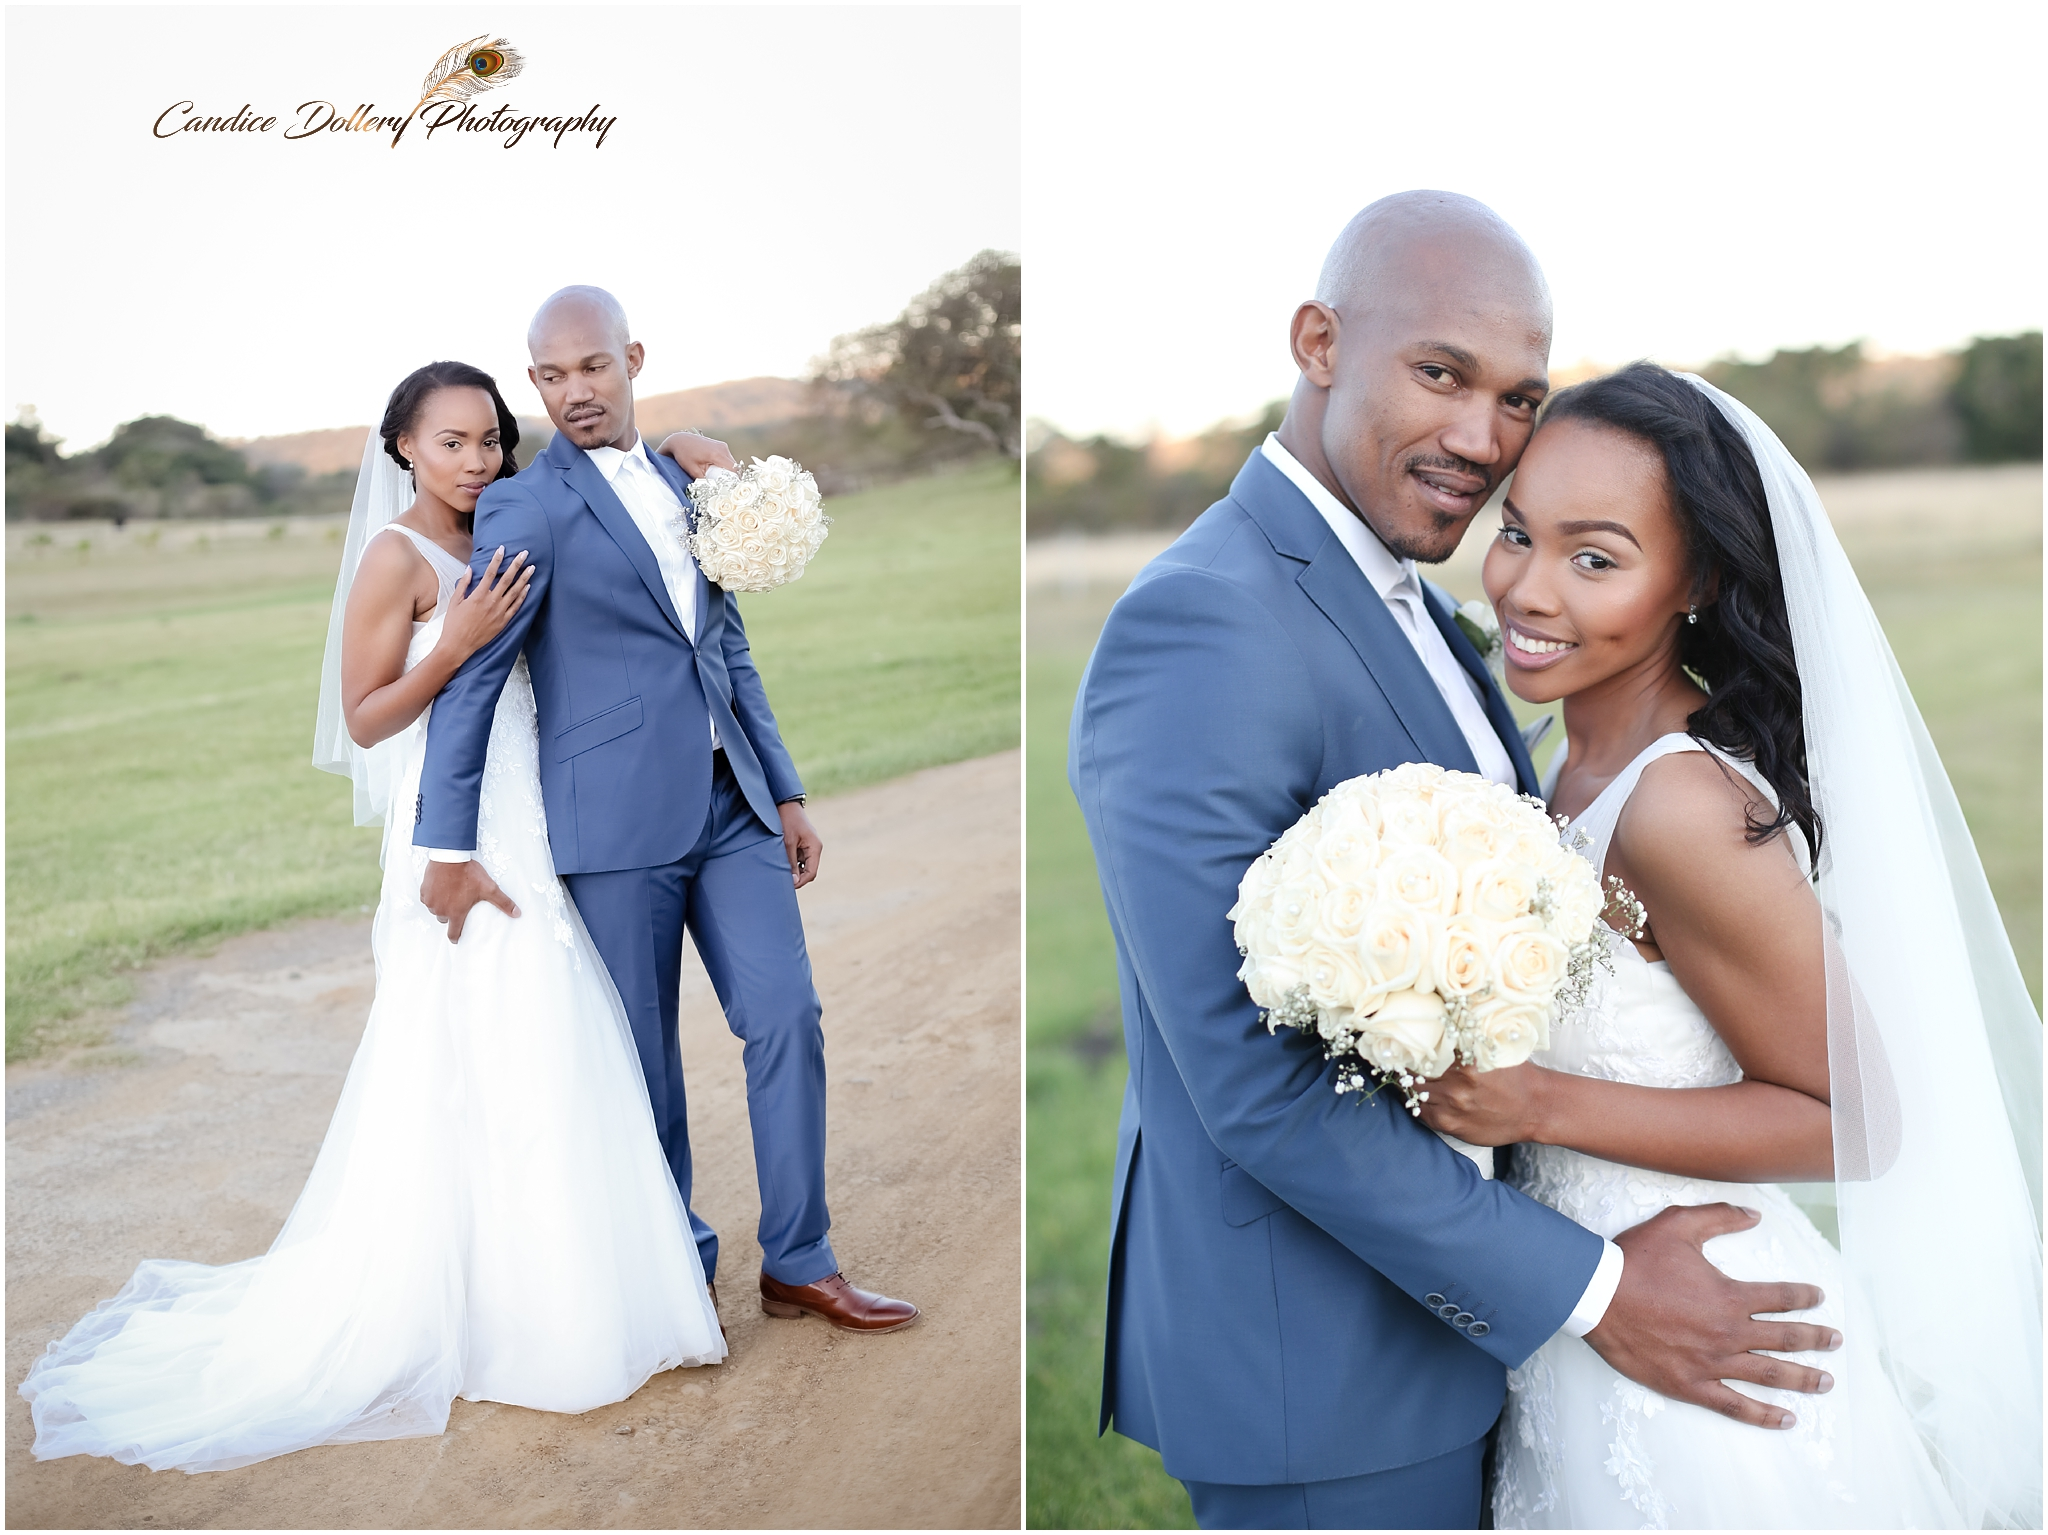 lelethu-kgotsos-wedding-candice-dollery-photography_1703